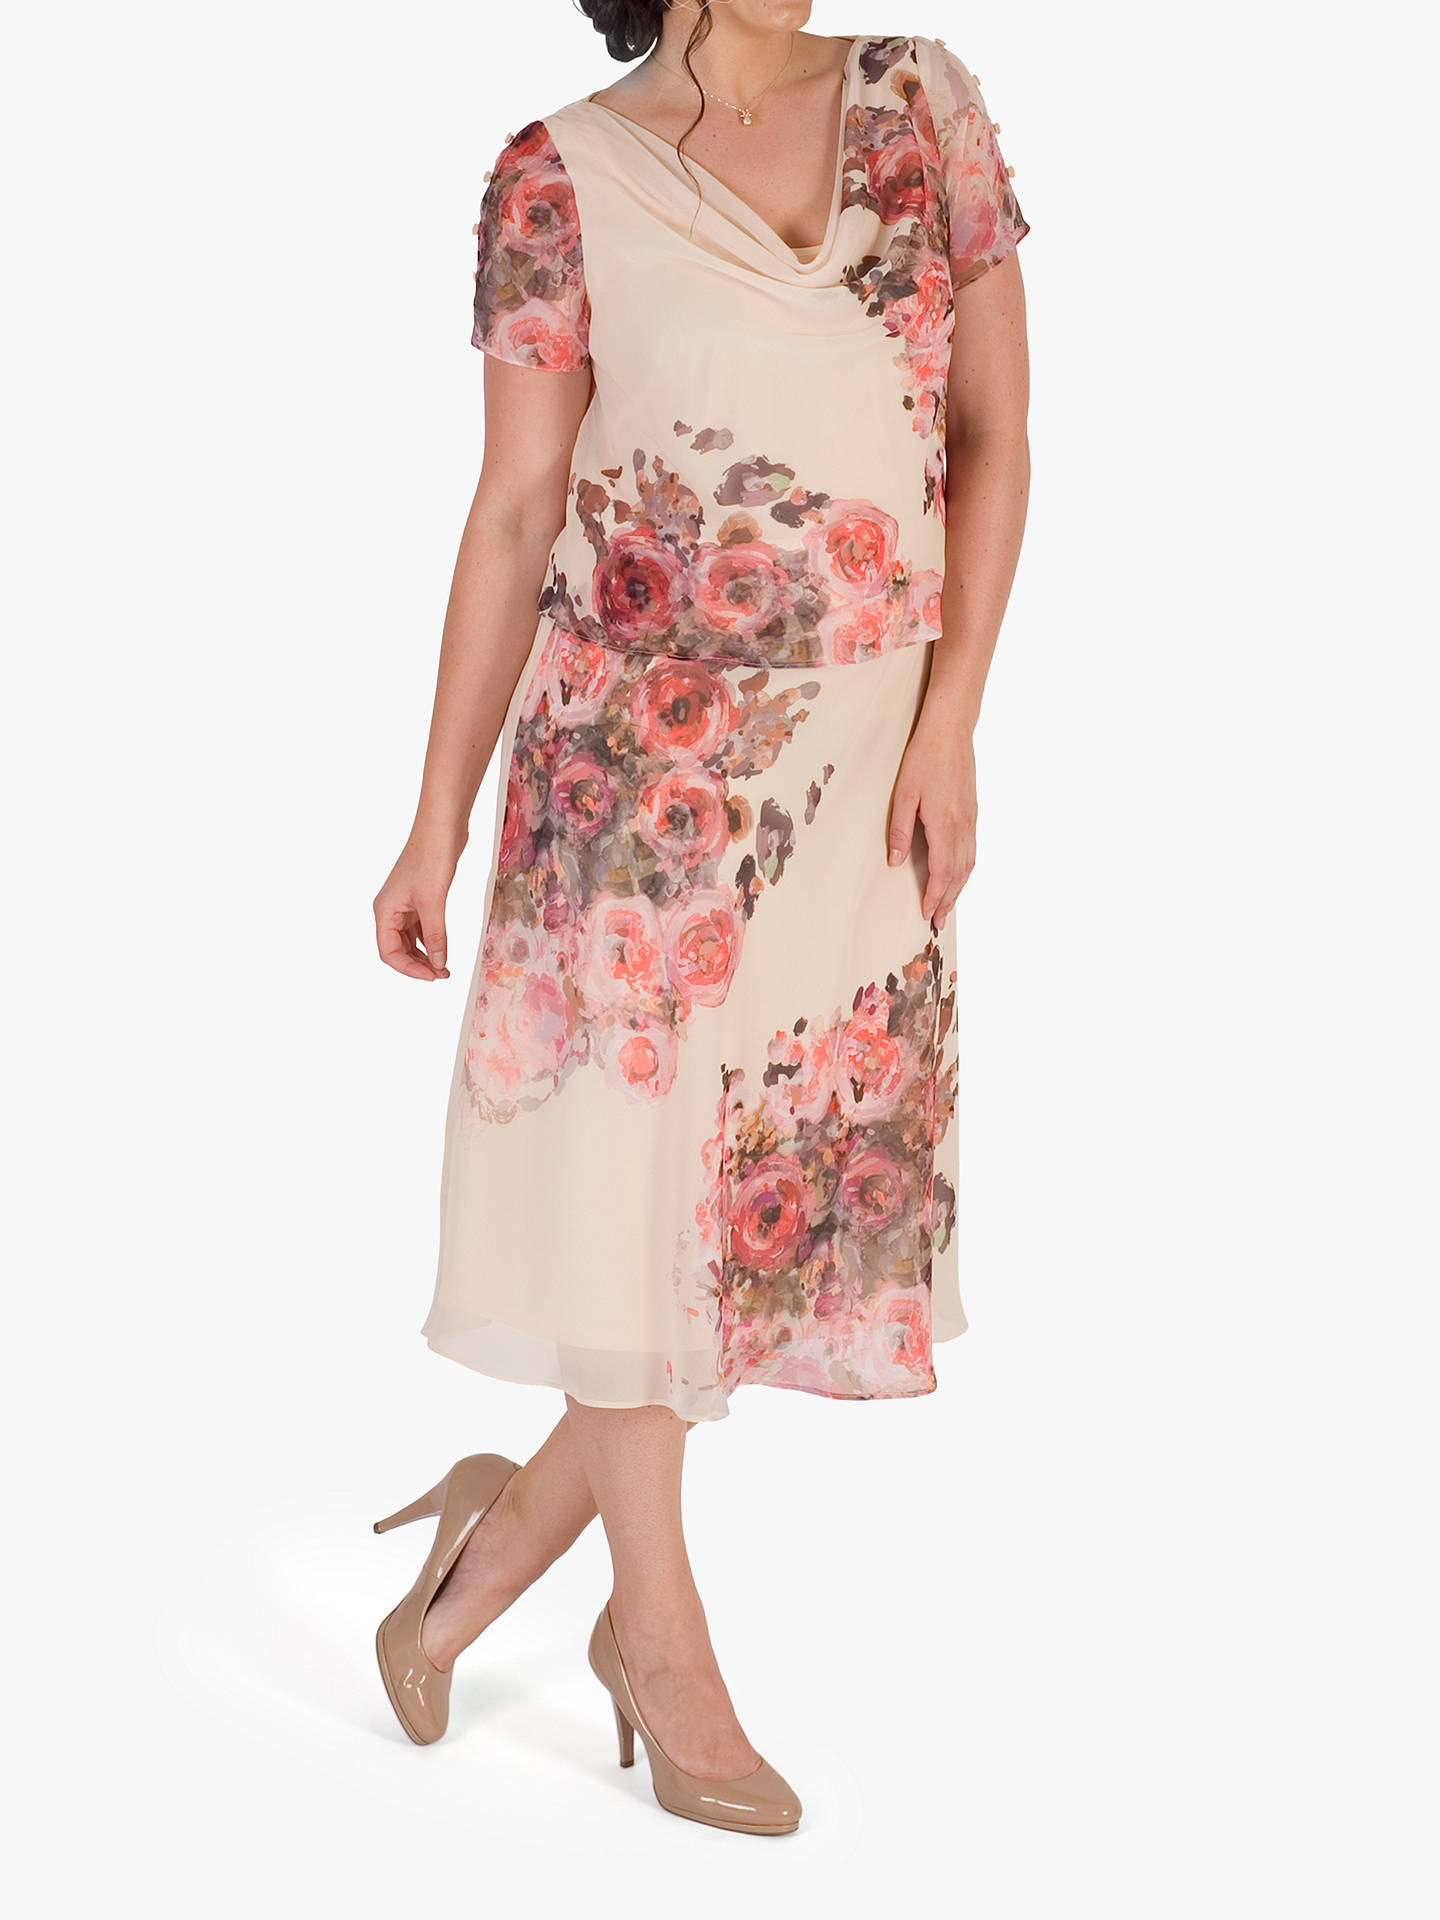 c280e676fae0 ... Buy Chesca Floral Print Layered Chiffon Dress, Orange/Multi, 14 Online  at johnlewis ...